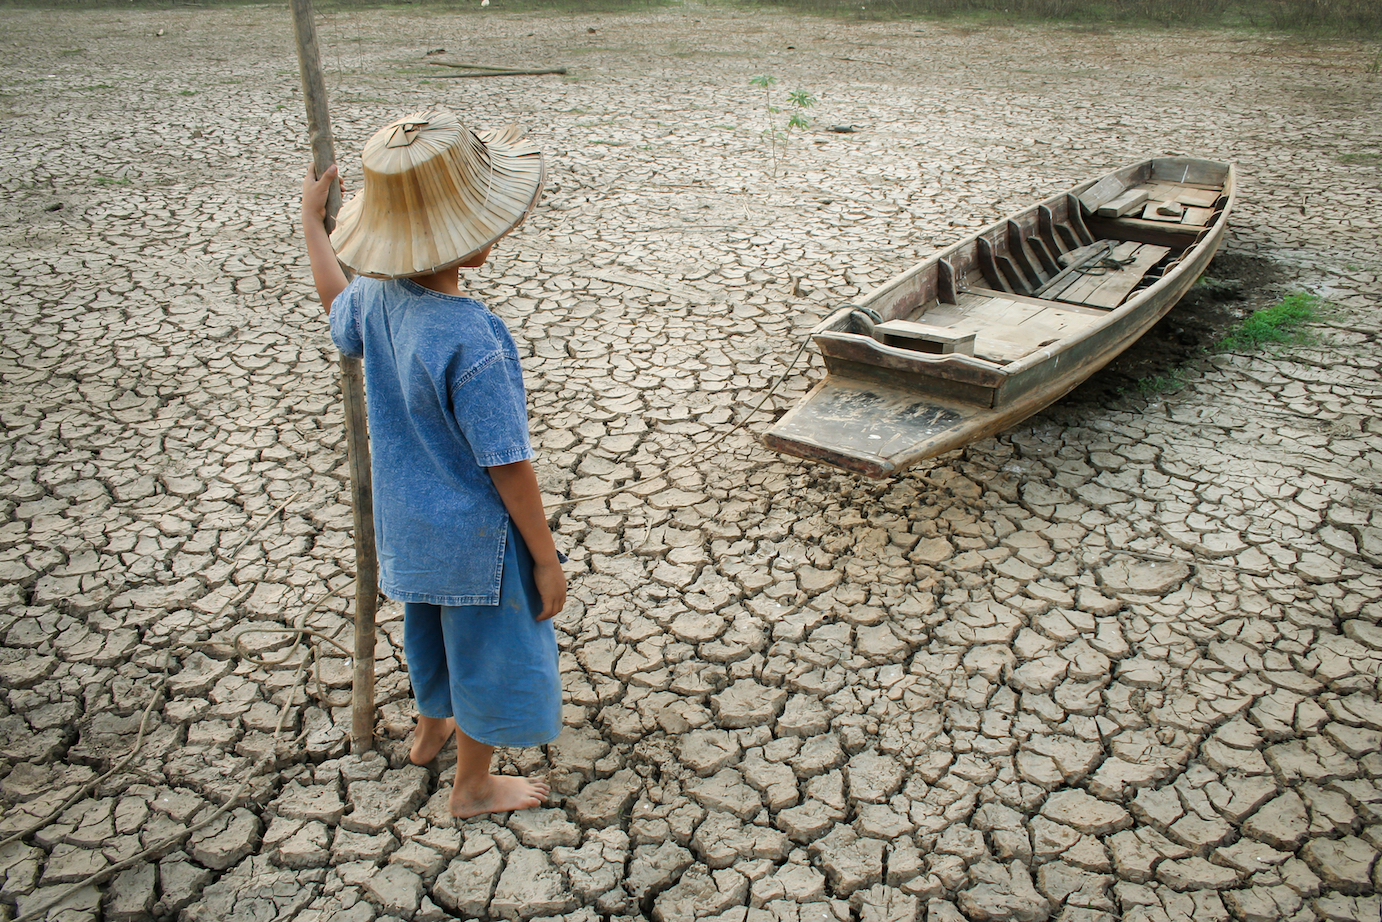 As the population grows and carbon dioxide emissions increase, future generations will become more susceptible to climate change.